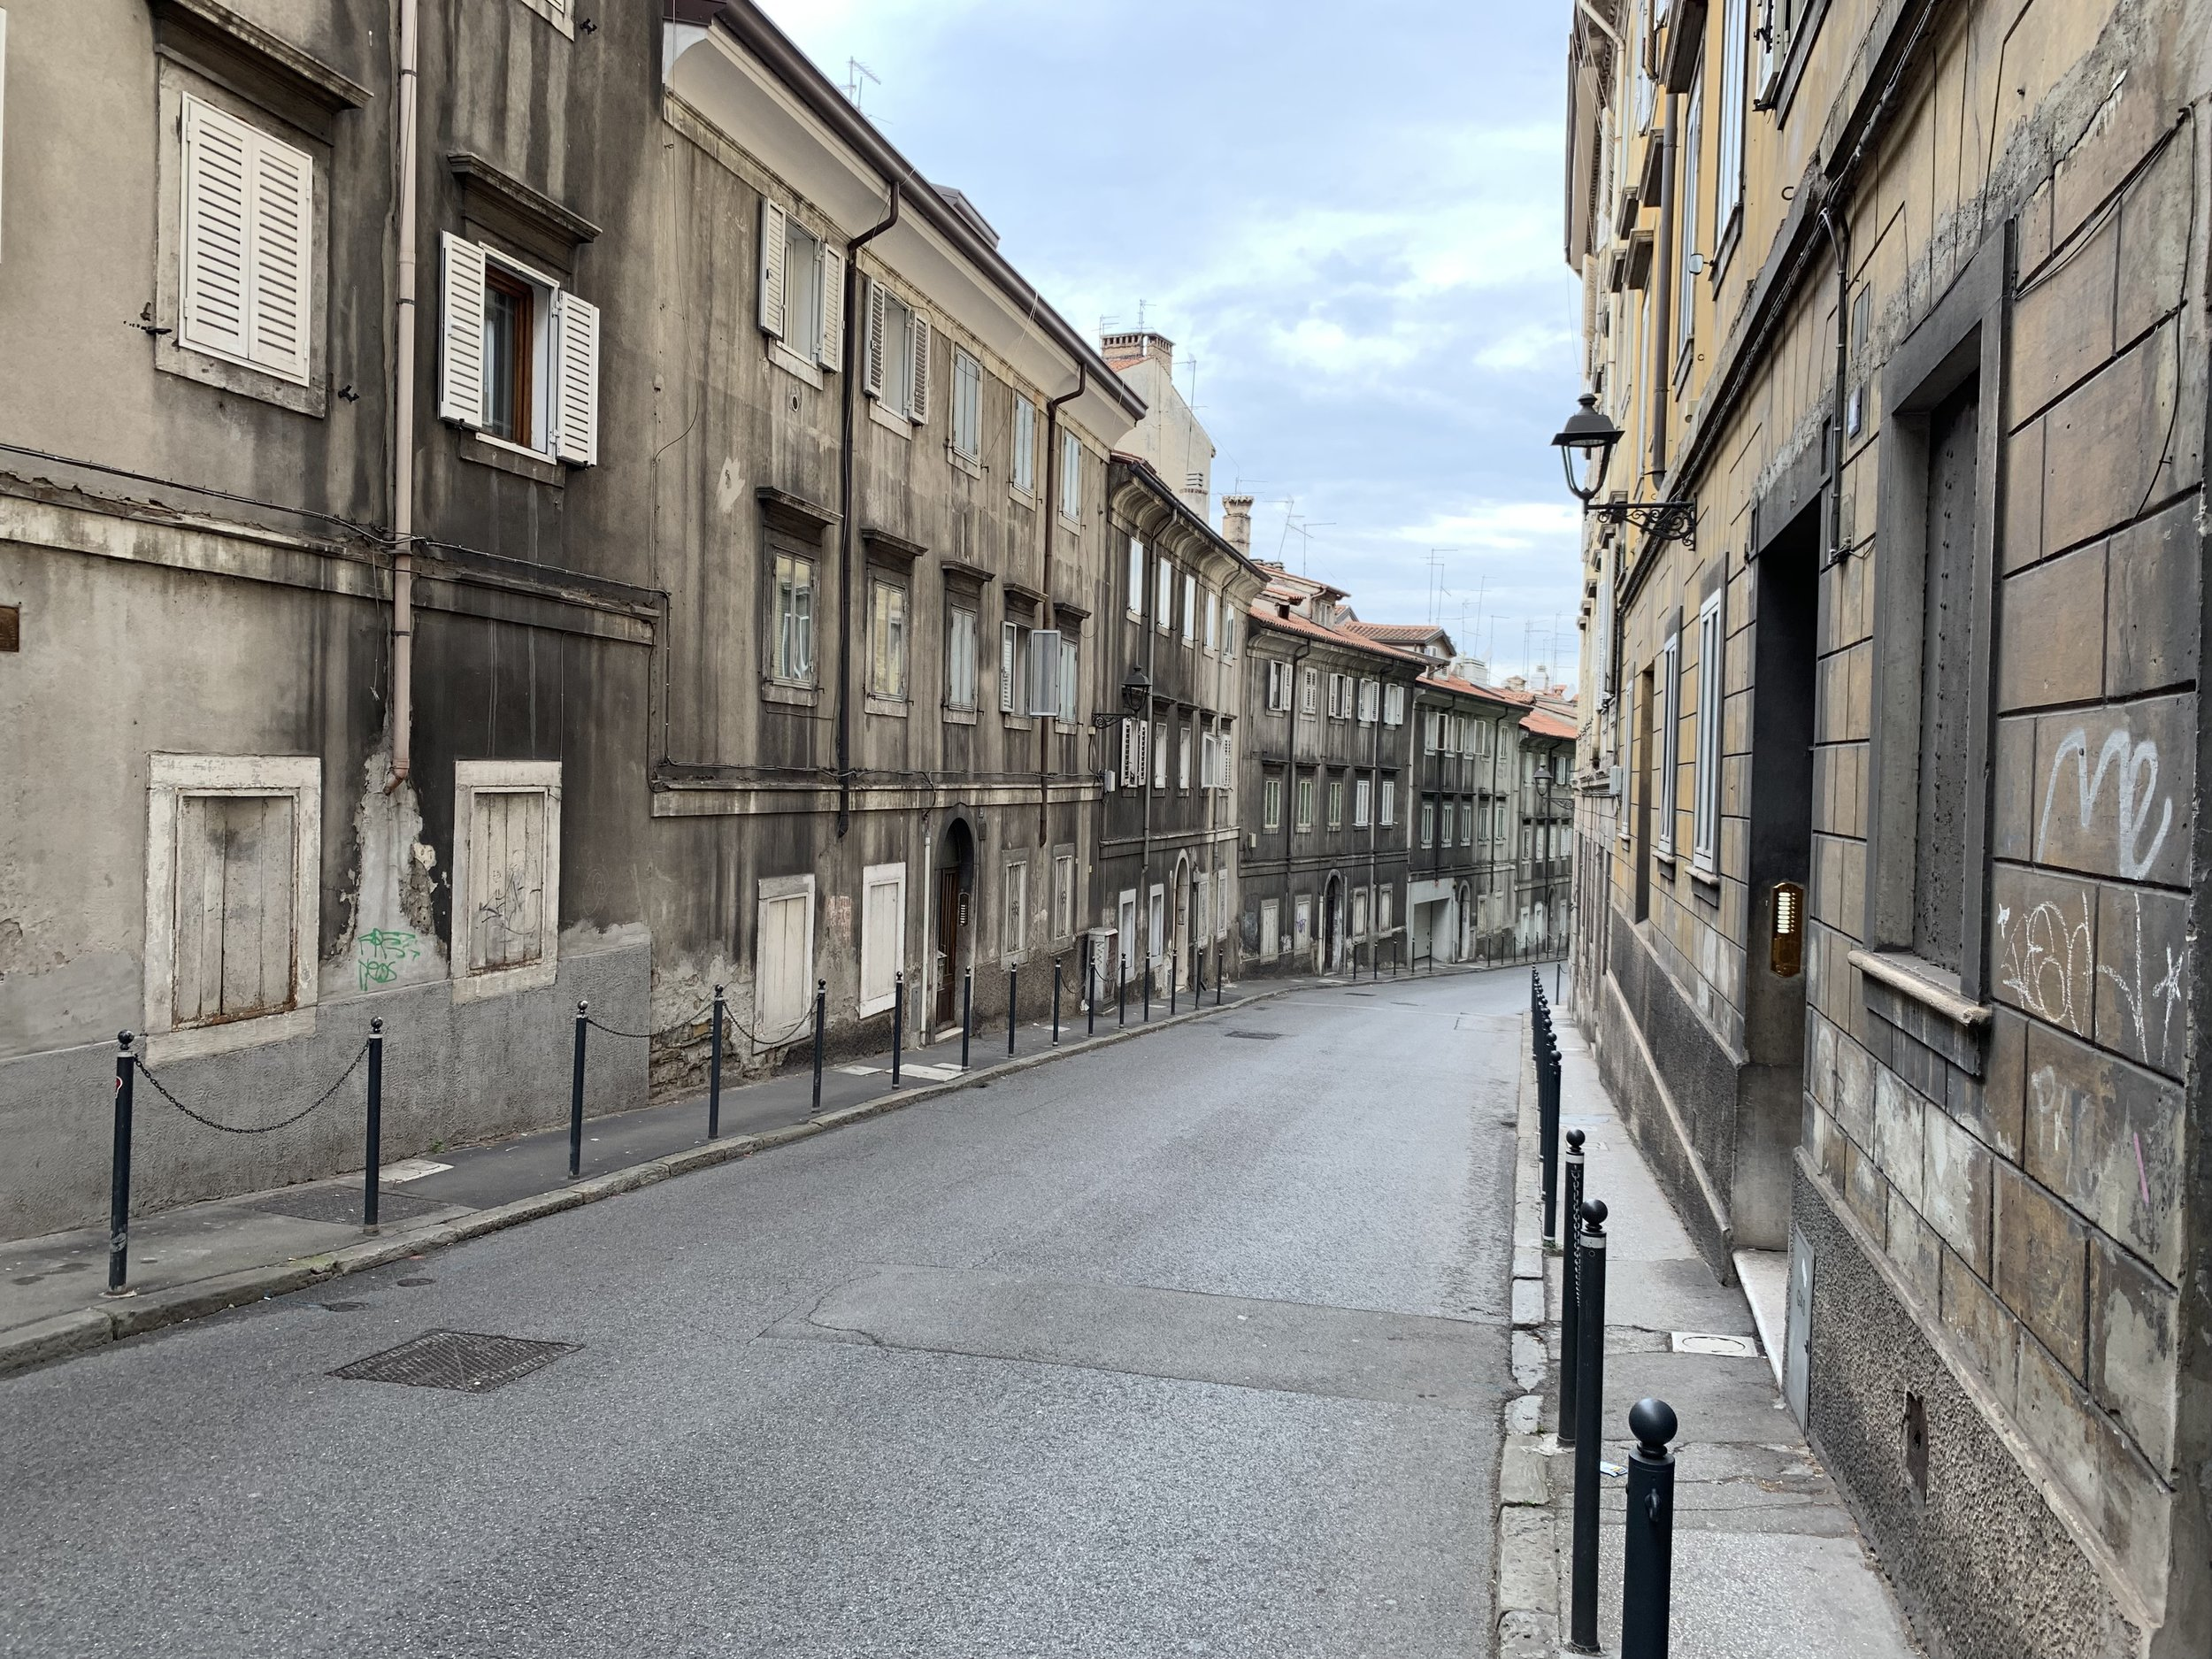 Most cities looked gray and bare like this during the communist years